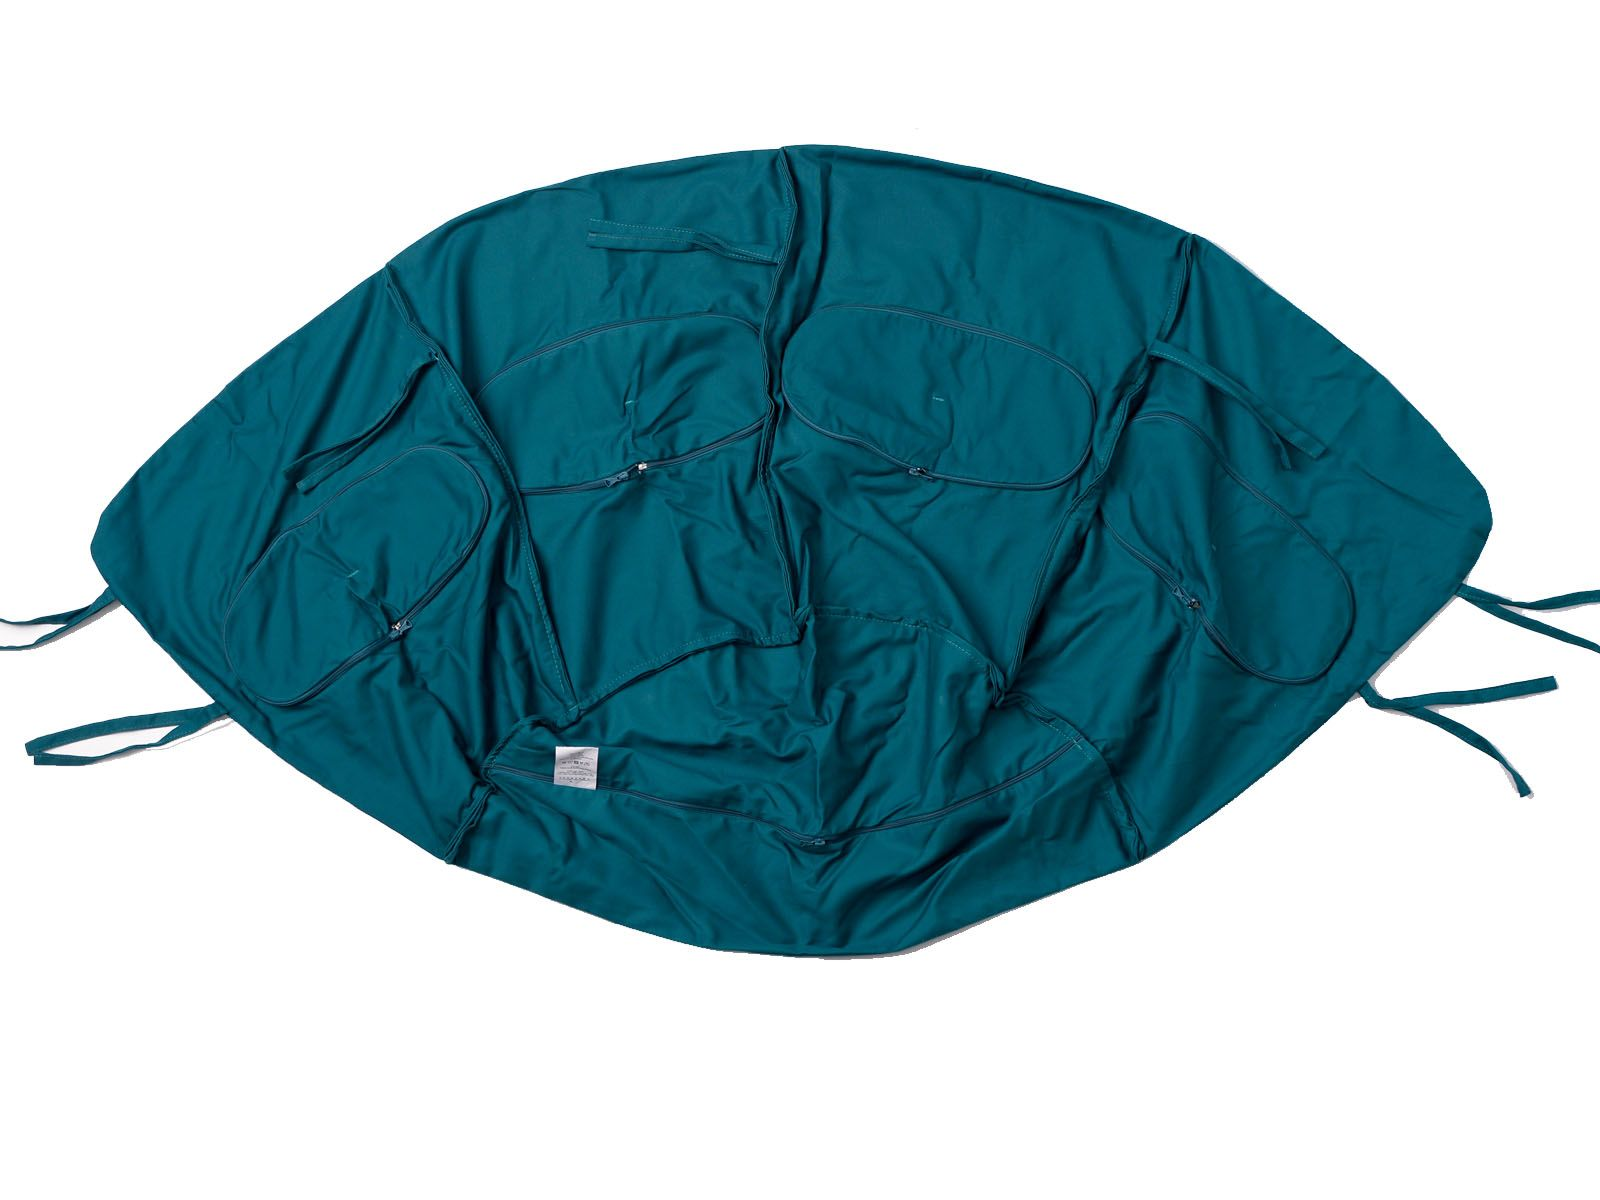 Globo green weatherproof cushion cover